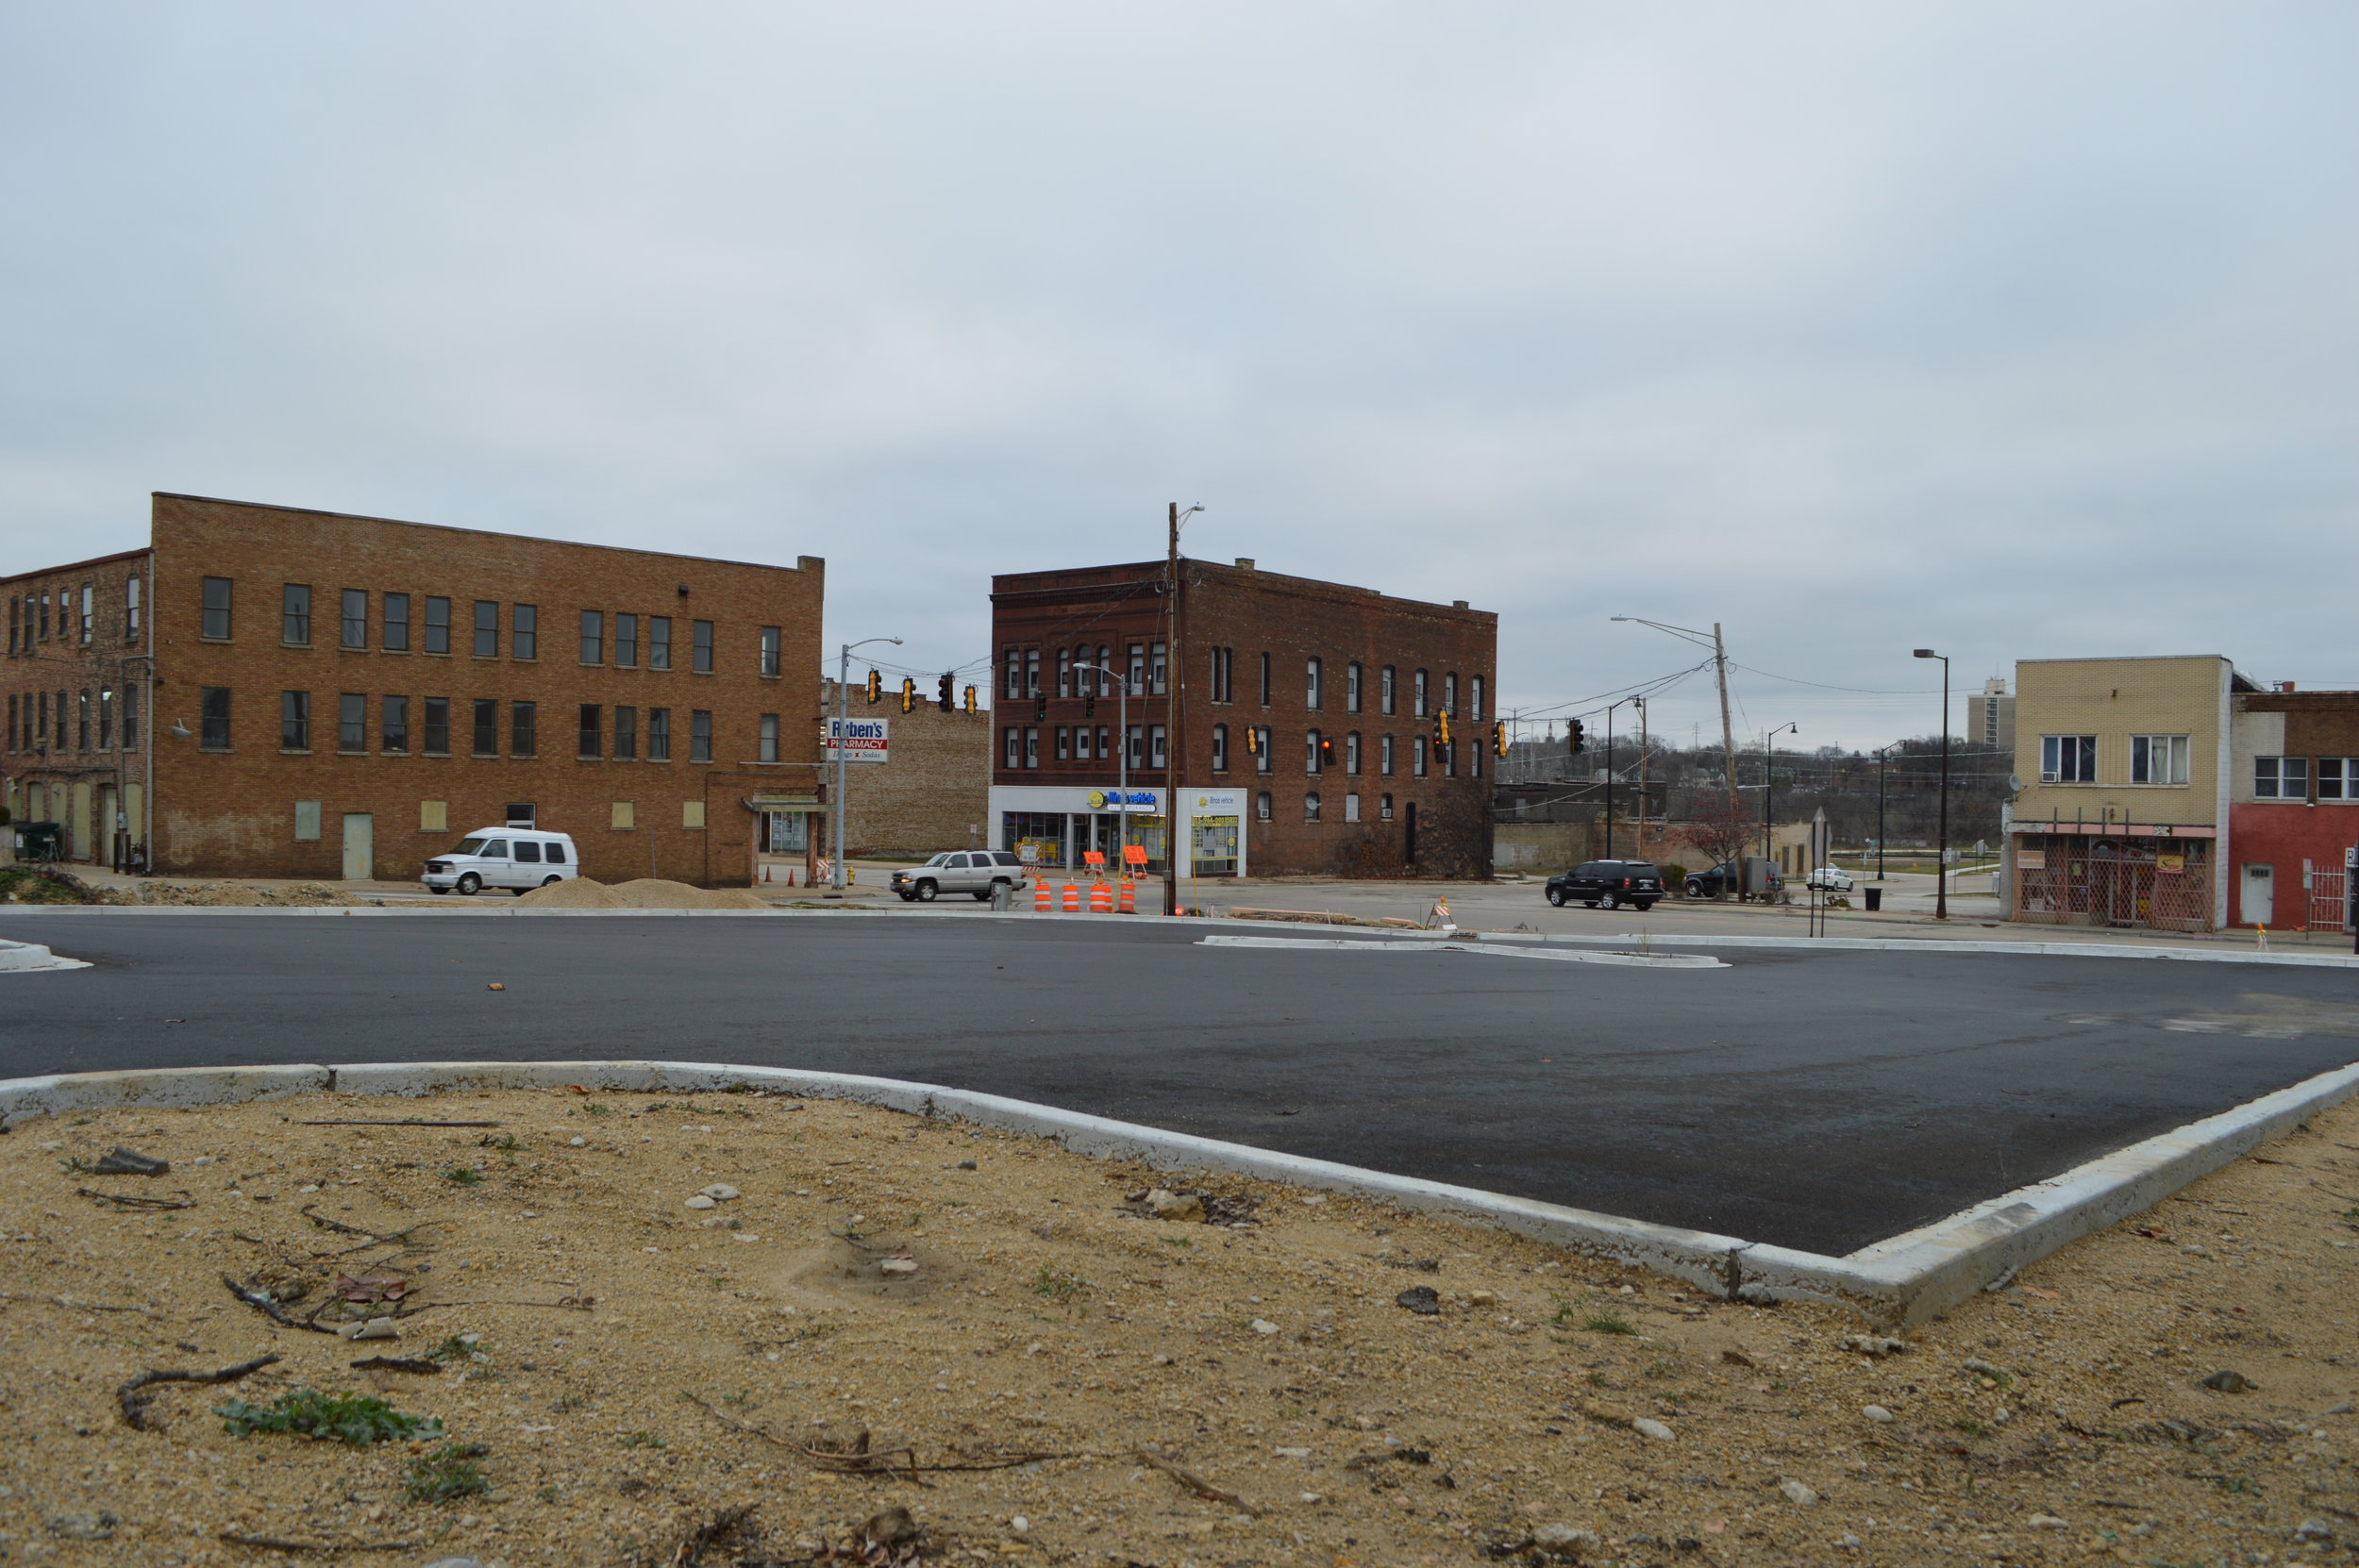 During the South Main reconstruction project, IDOT removed the on-street parking and demolished a tax-producing building so drivers could have ample parking.